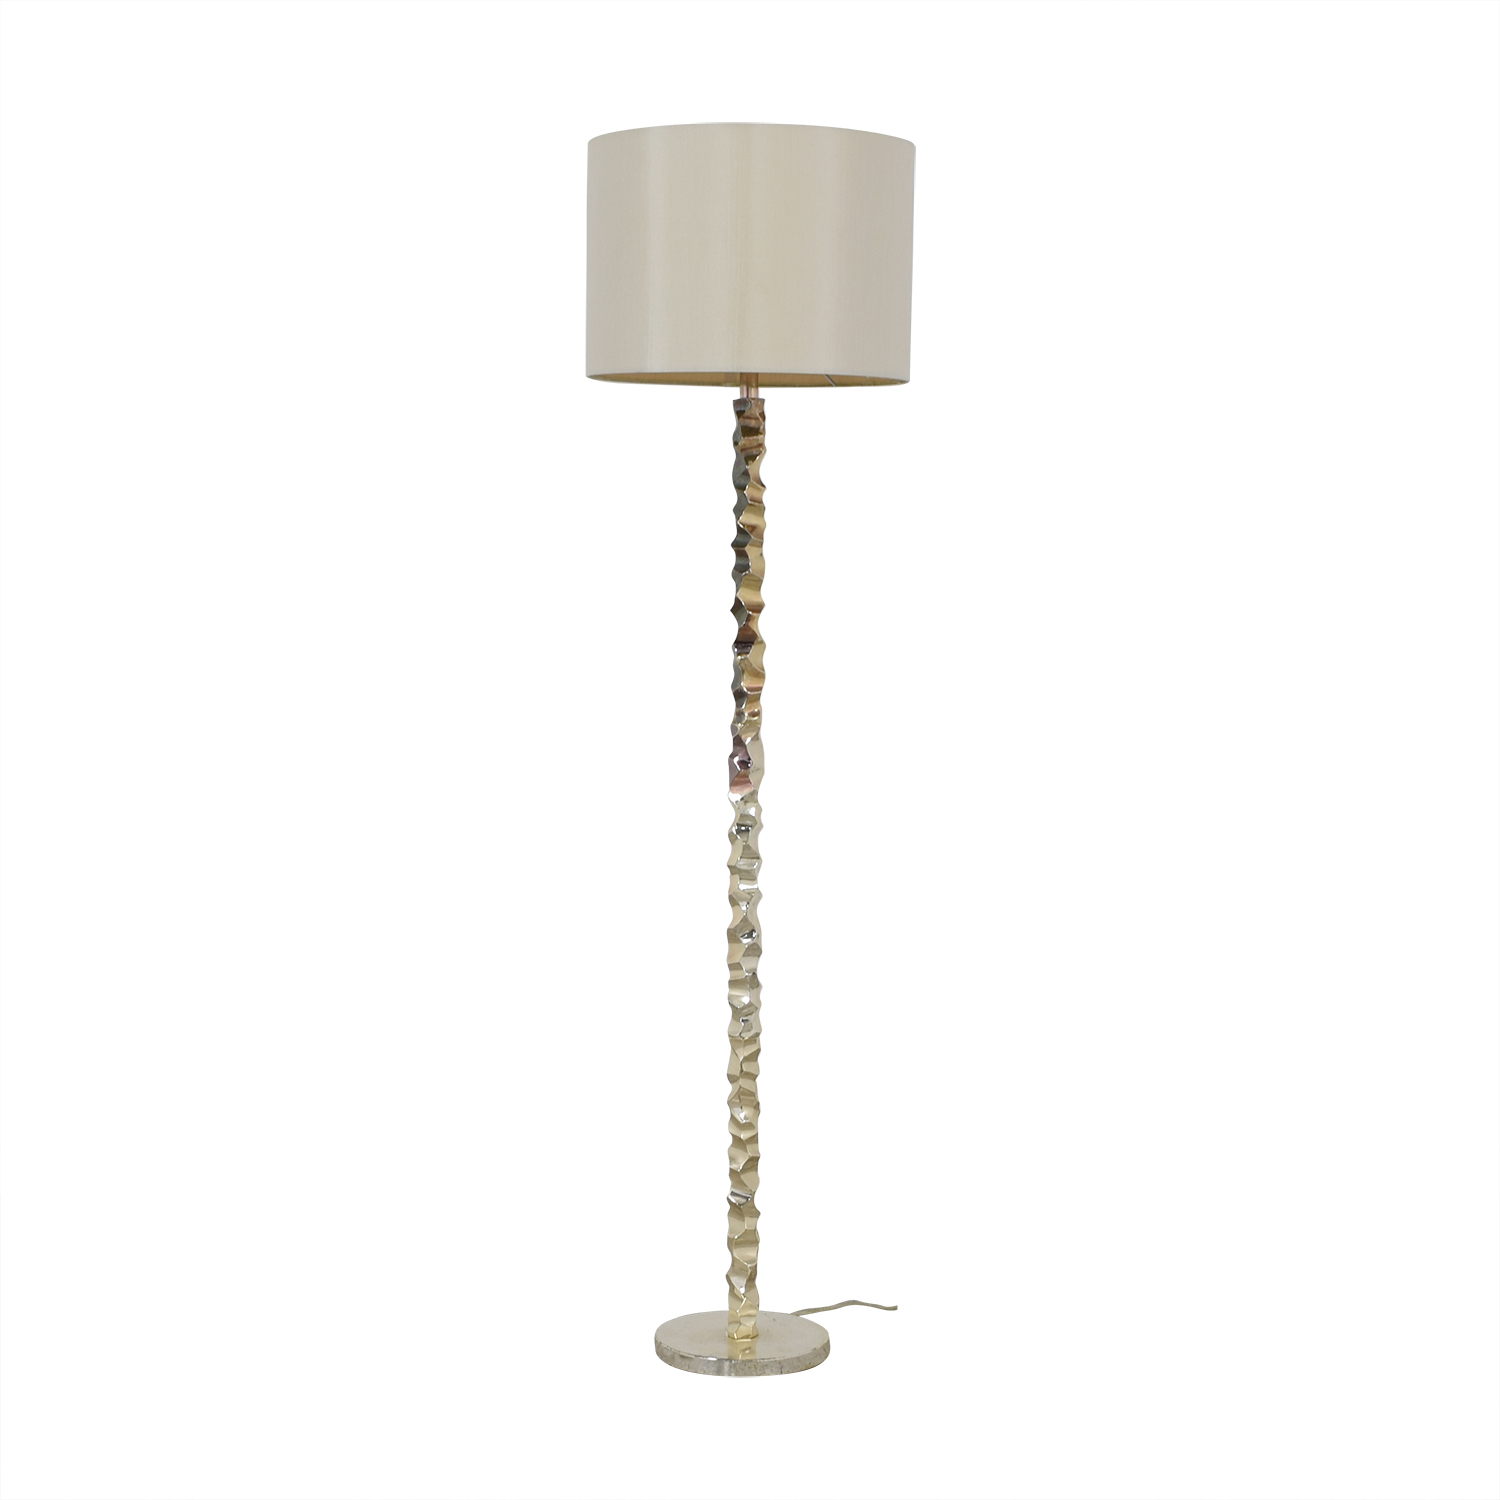 Metal Floor Lamp Decor